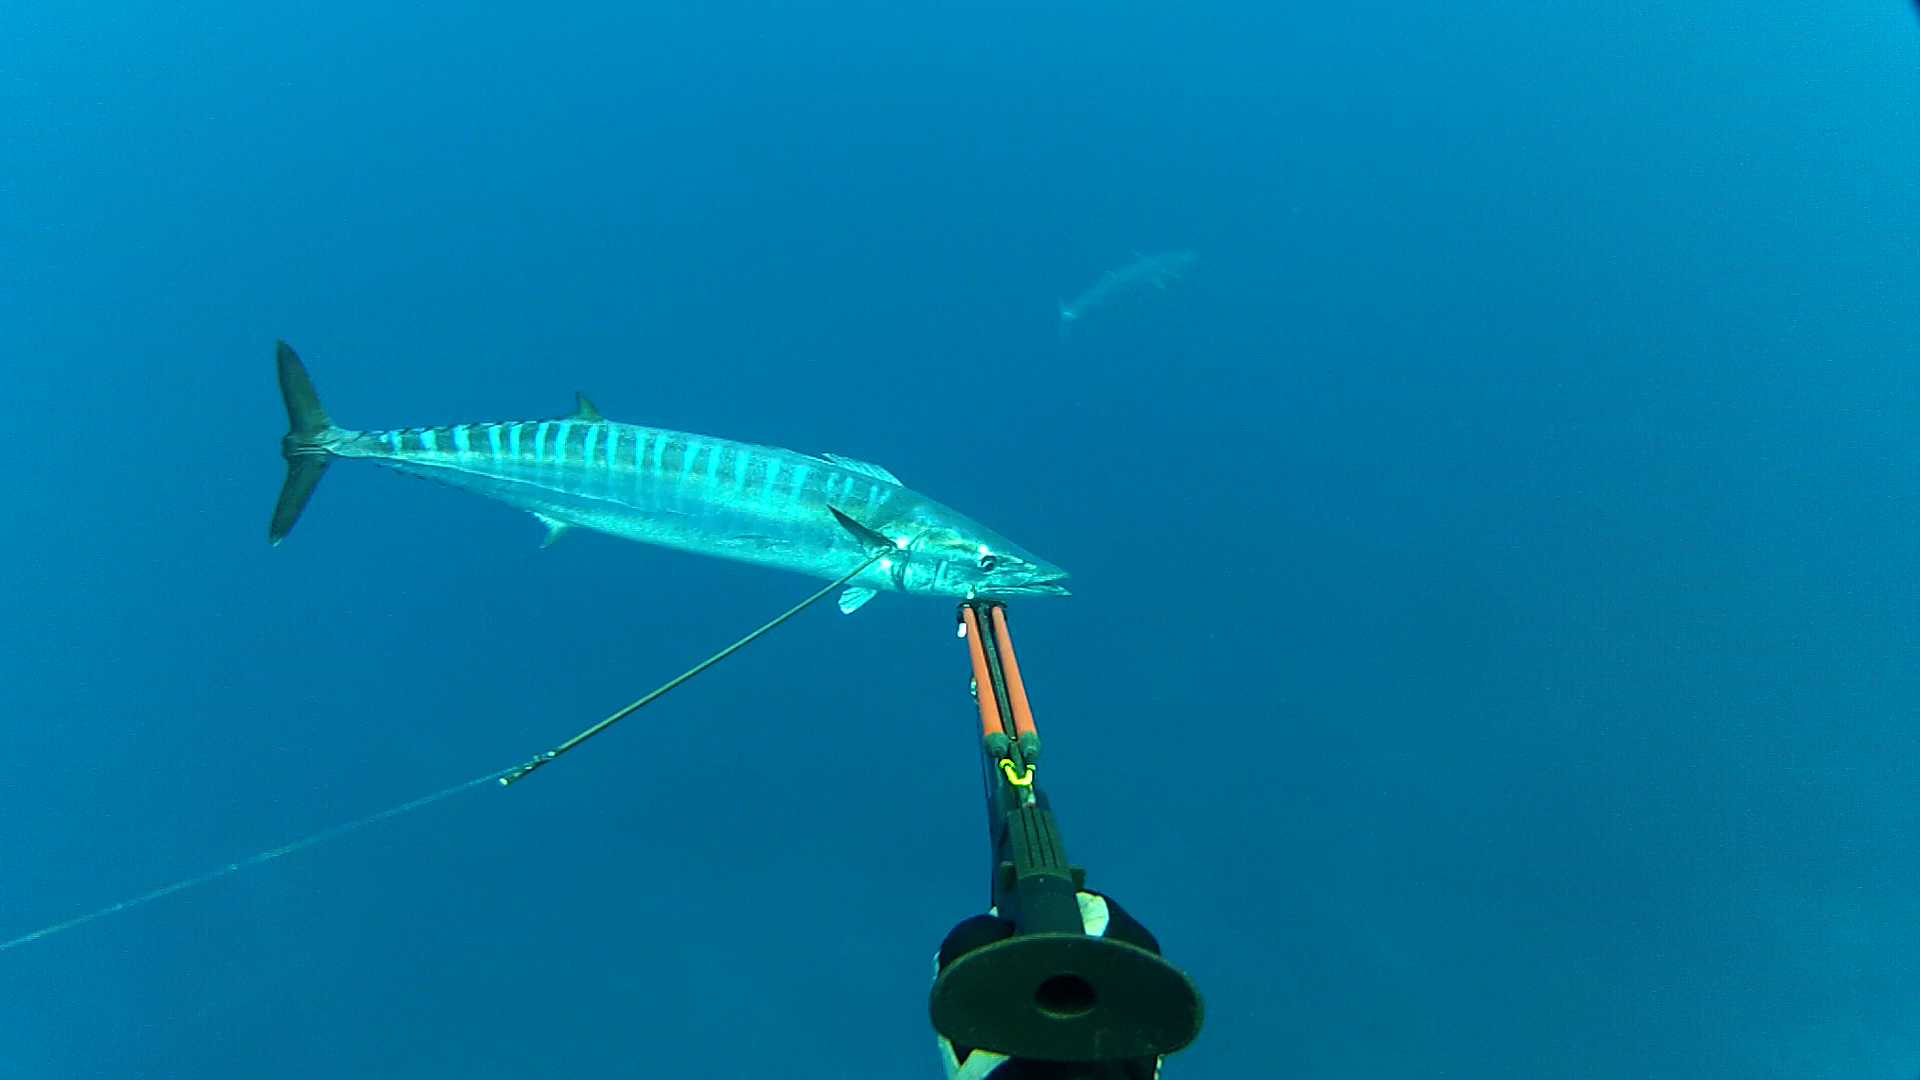 Very Nice Girl Hd Wallpaper Maui Spear Fishing Guides And Information